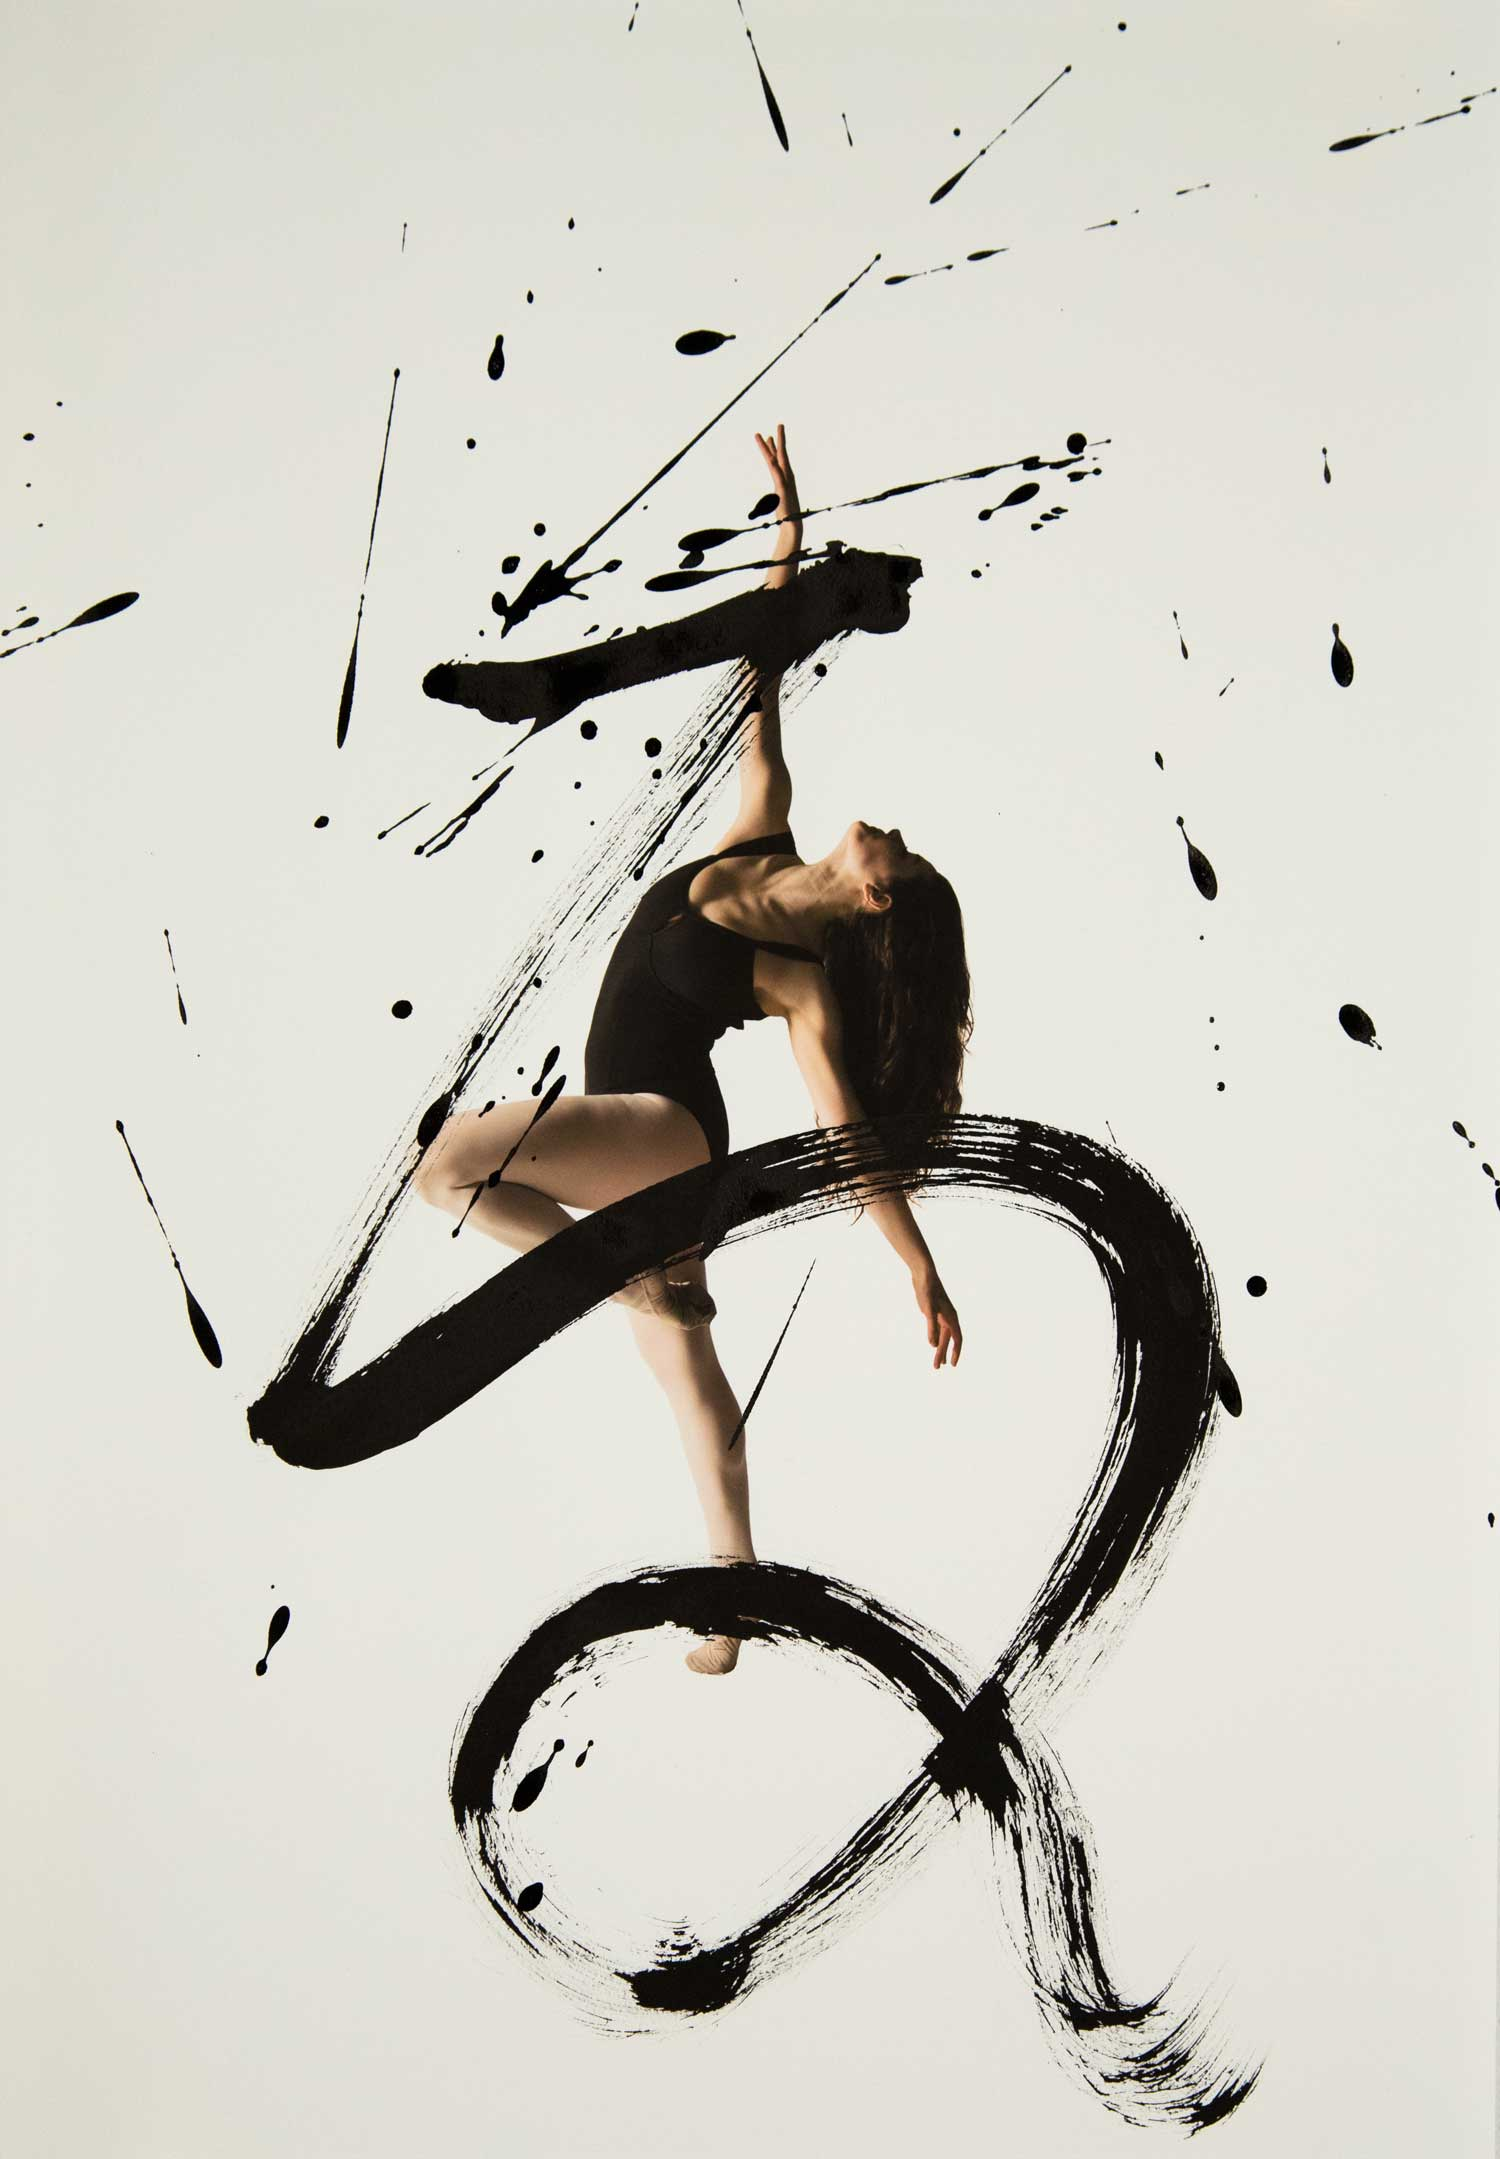 Expressive Combination of Ballet Dancers and Calligraphy | Yellowtrace